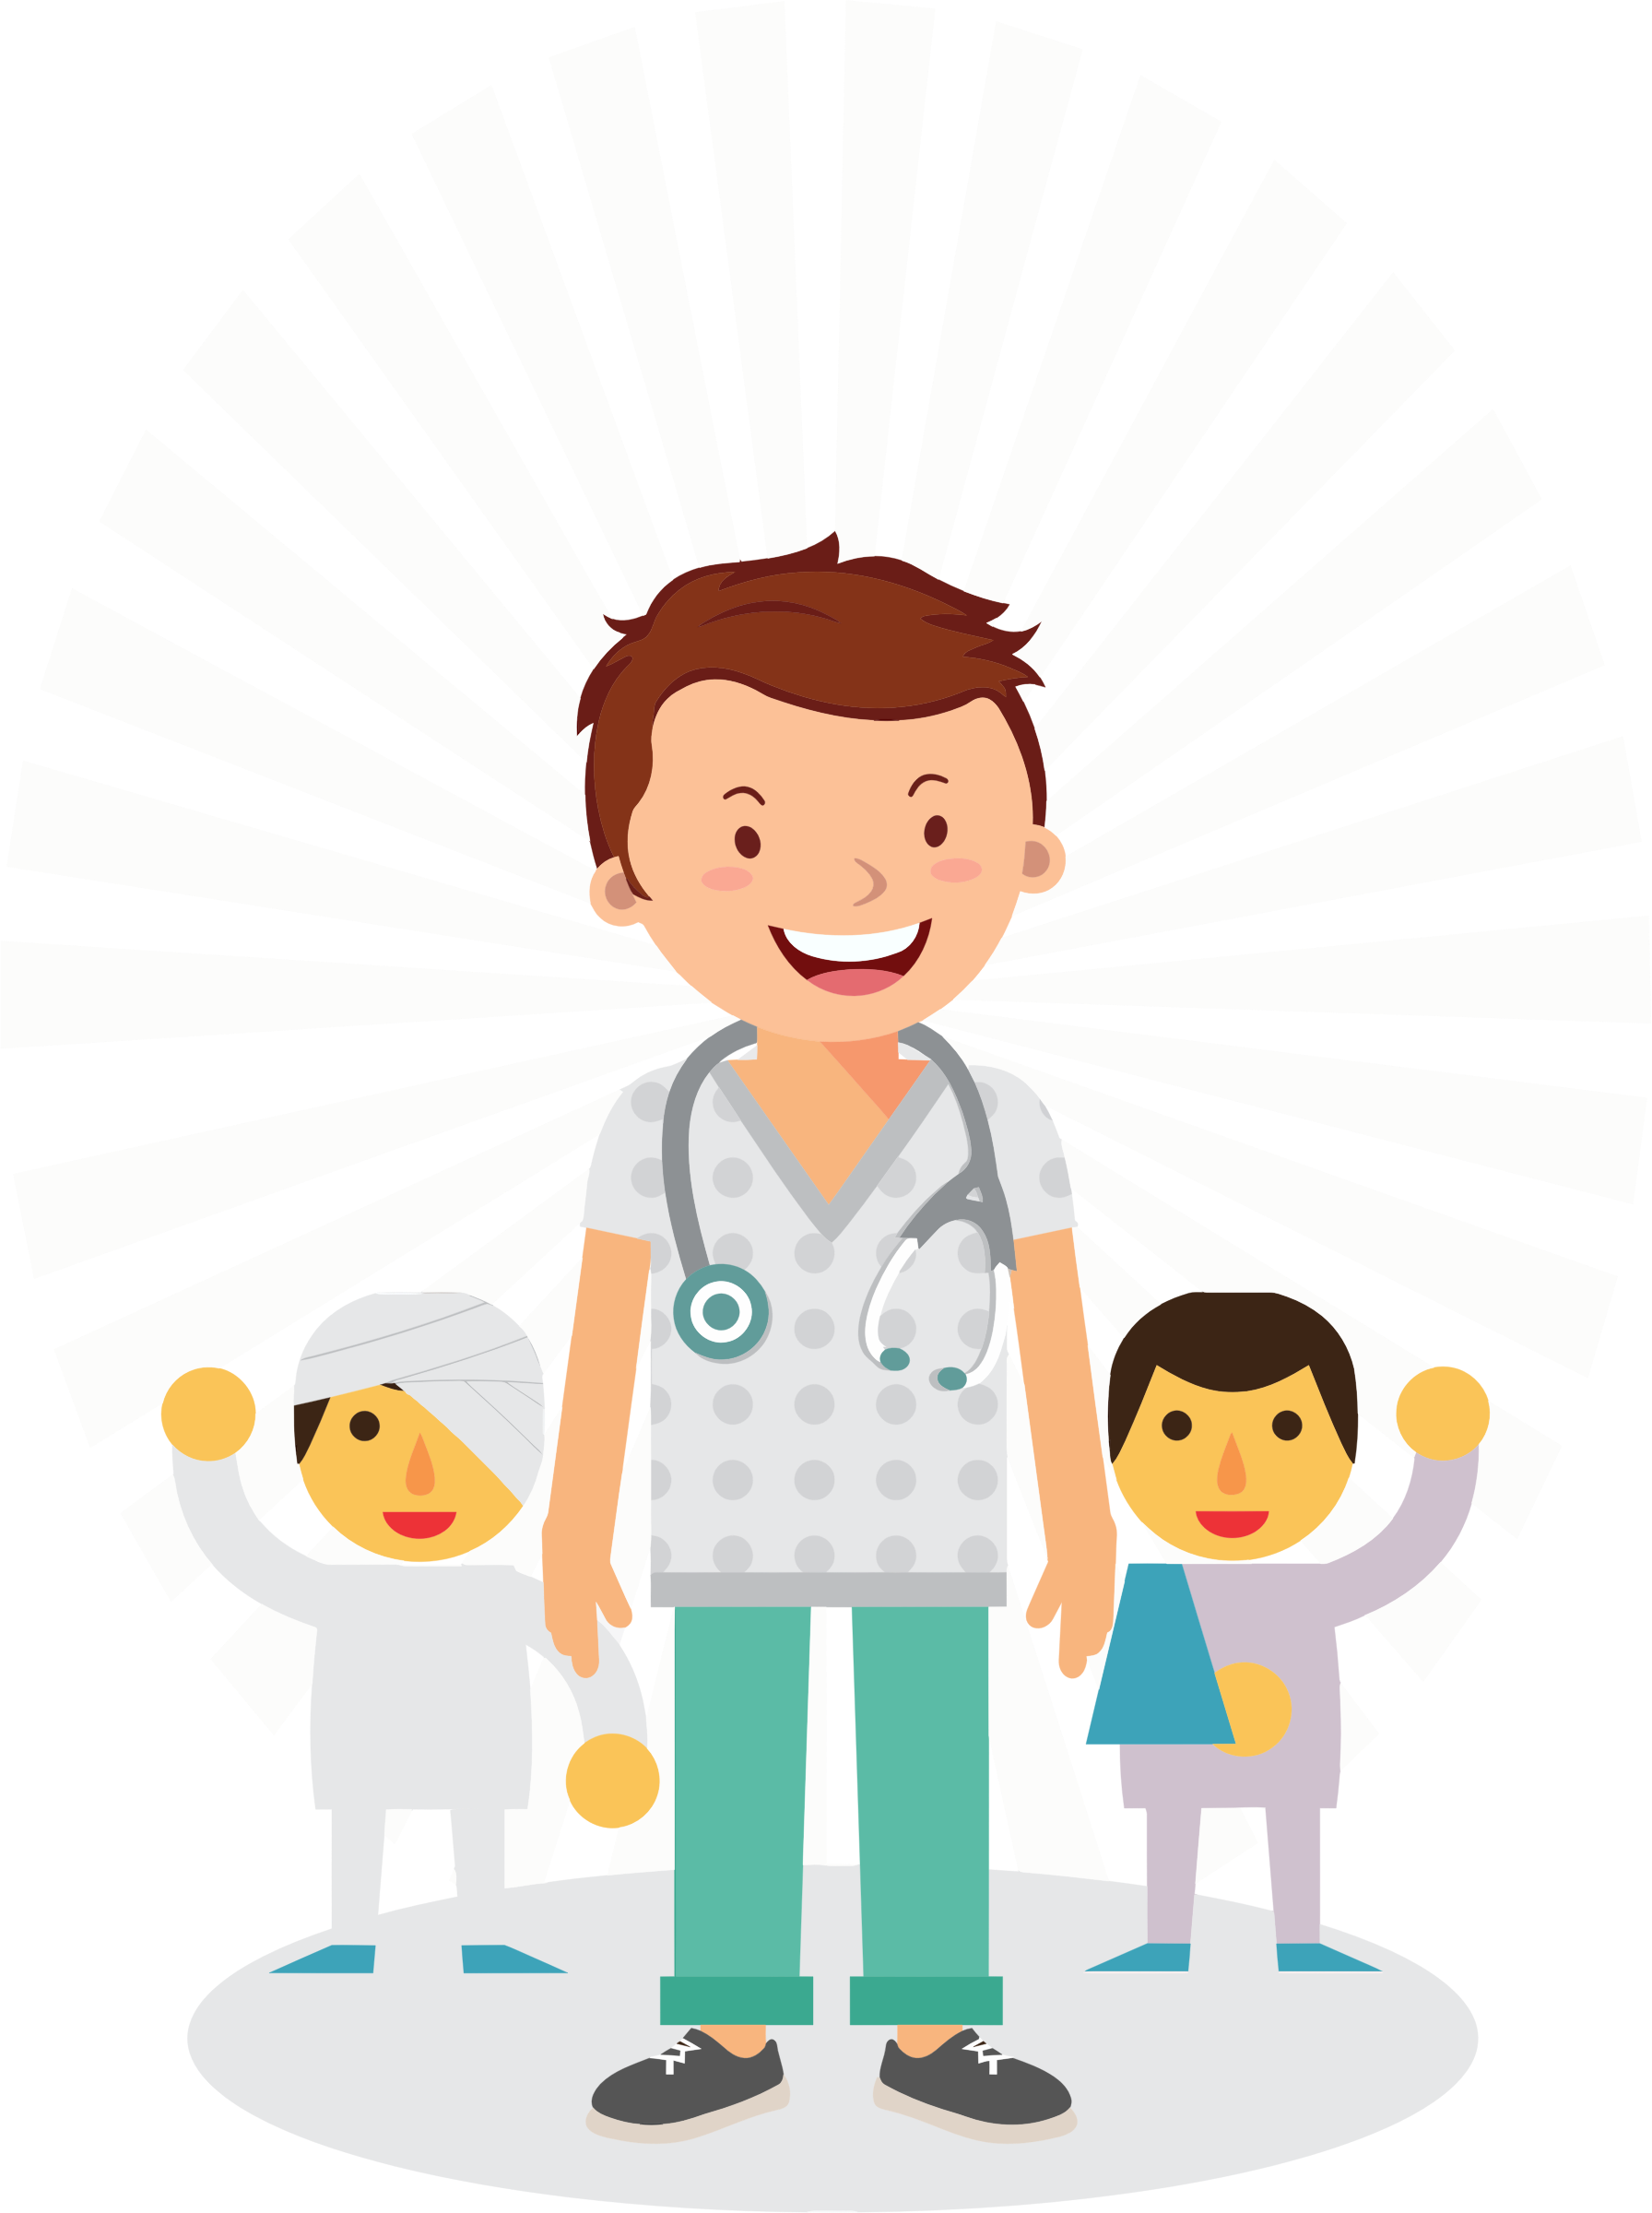 And patients icons png. Clipart doctor doctor patient